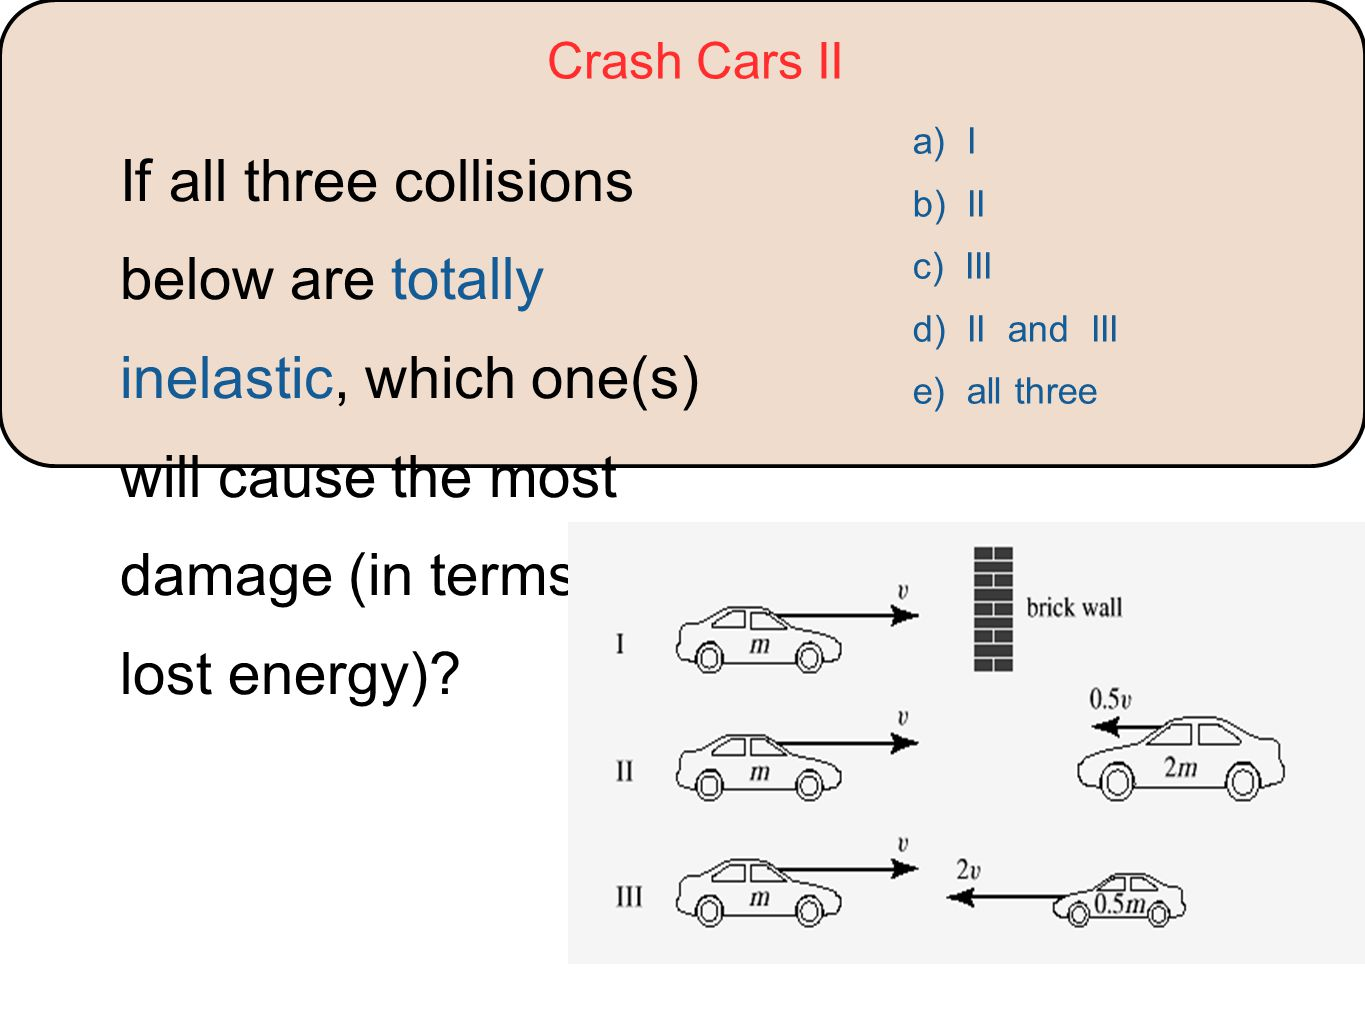 Crash Cars II If all three collisions below are totally inelastic, which one(s) will cause the most damage (in terms of lost energy)